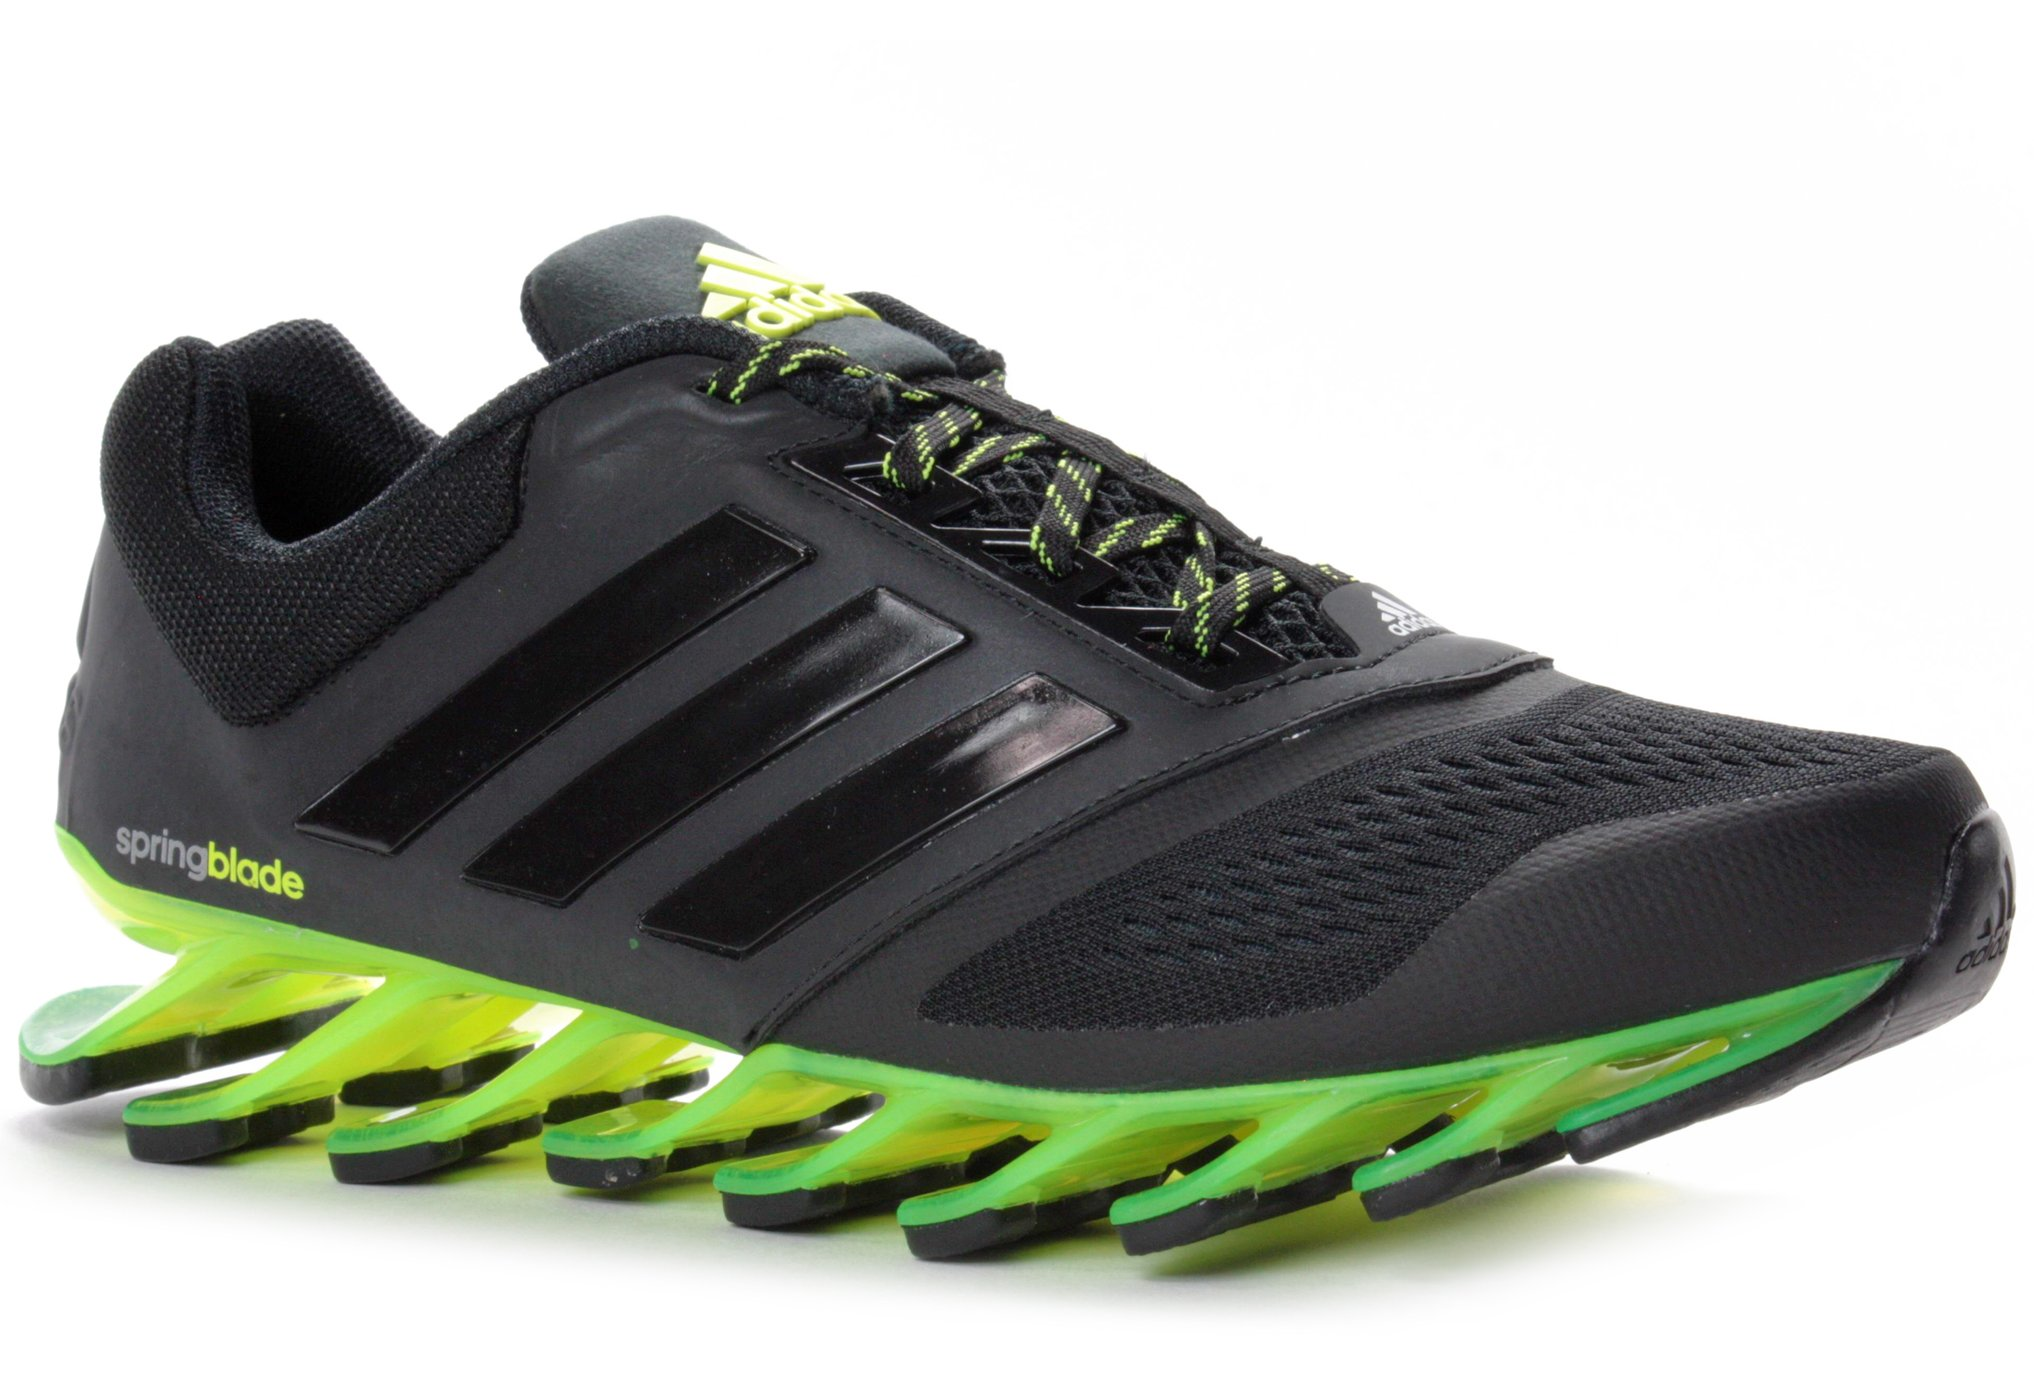 new product 846f3 5c4c4 denmark adidas springblade drive 2.0 m pas cher chaussures homme adidas  running springblade drive 2.0 m